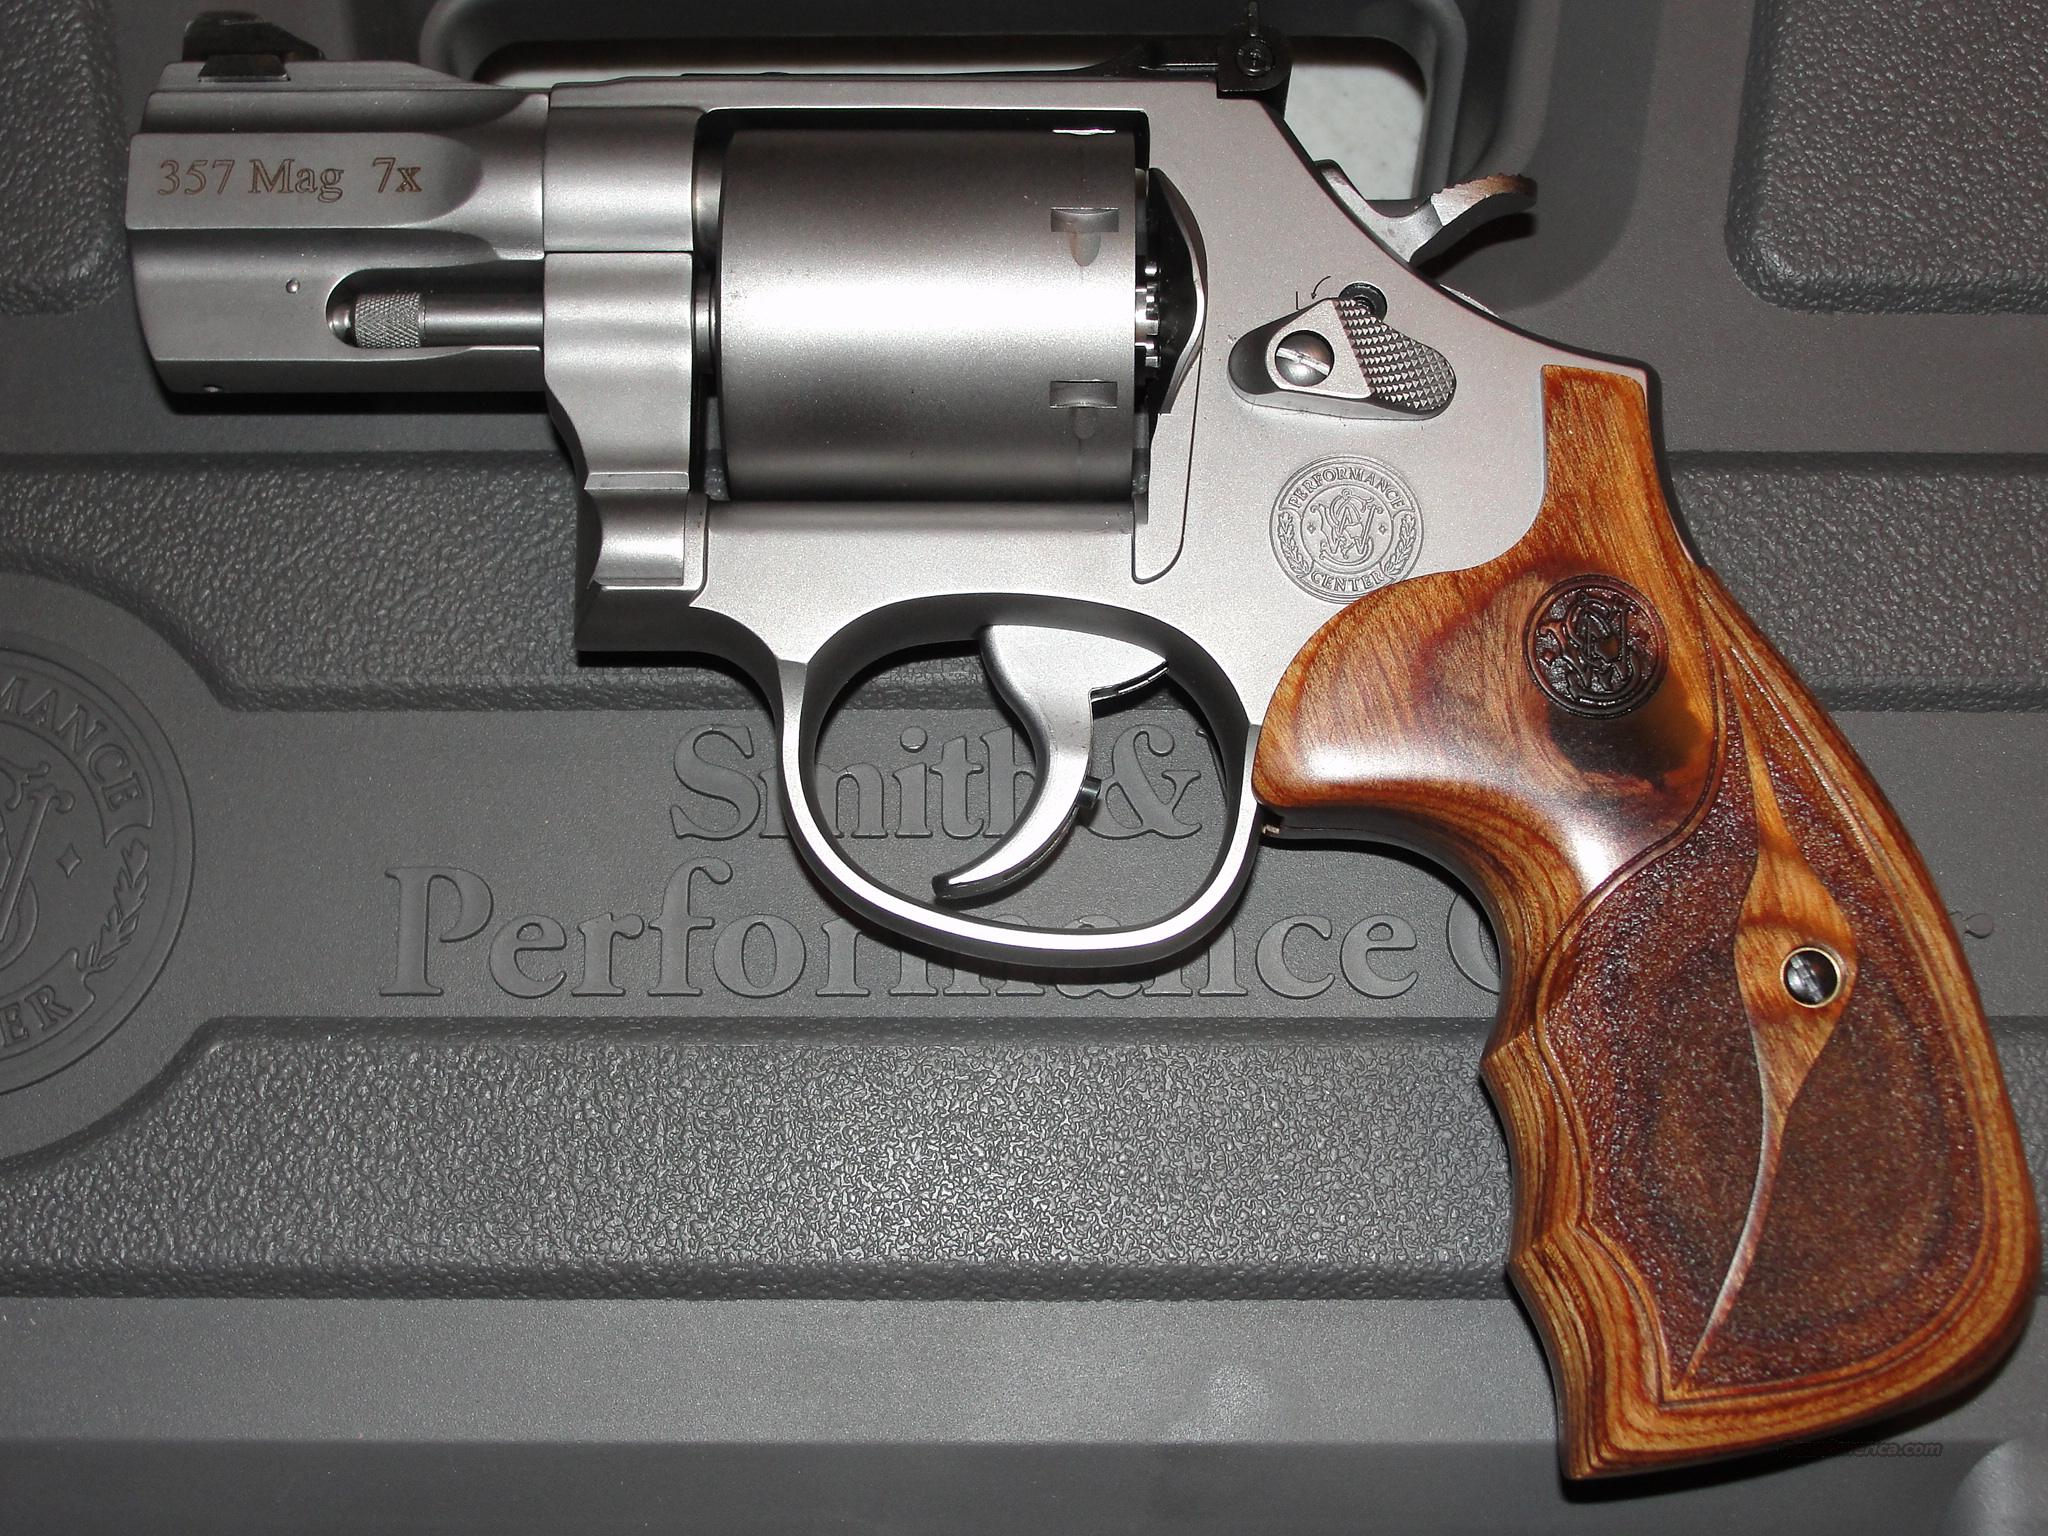 S&W M686 PERFORMANCE CENTER 357 2.5 SS (2014)   Guns > Pistols > Smith & Wesson Revolvers > Performance Center